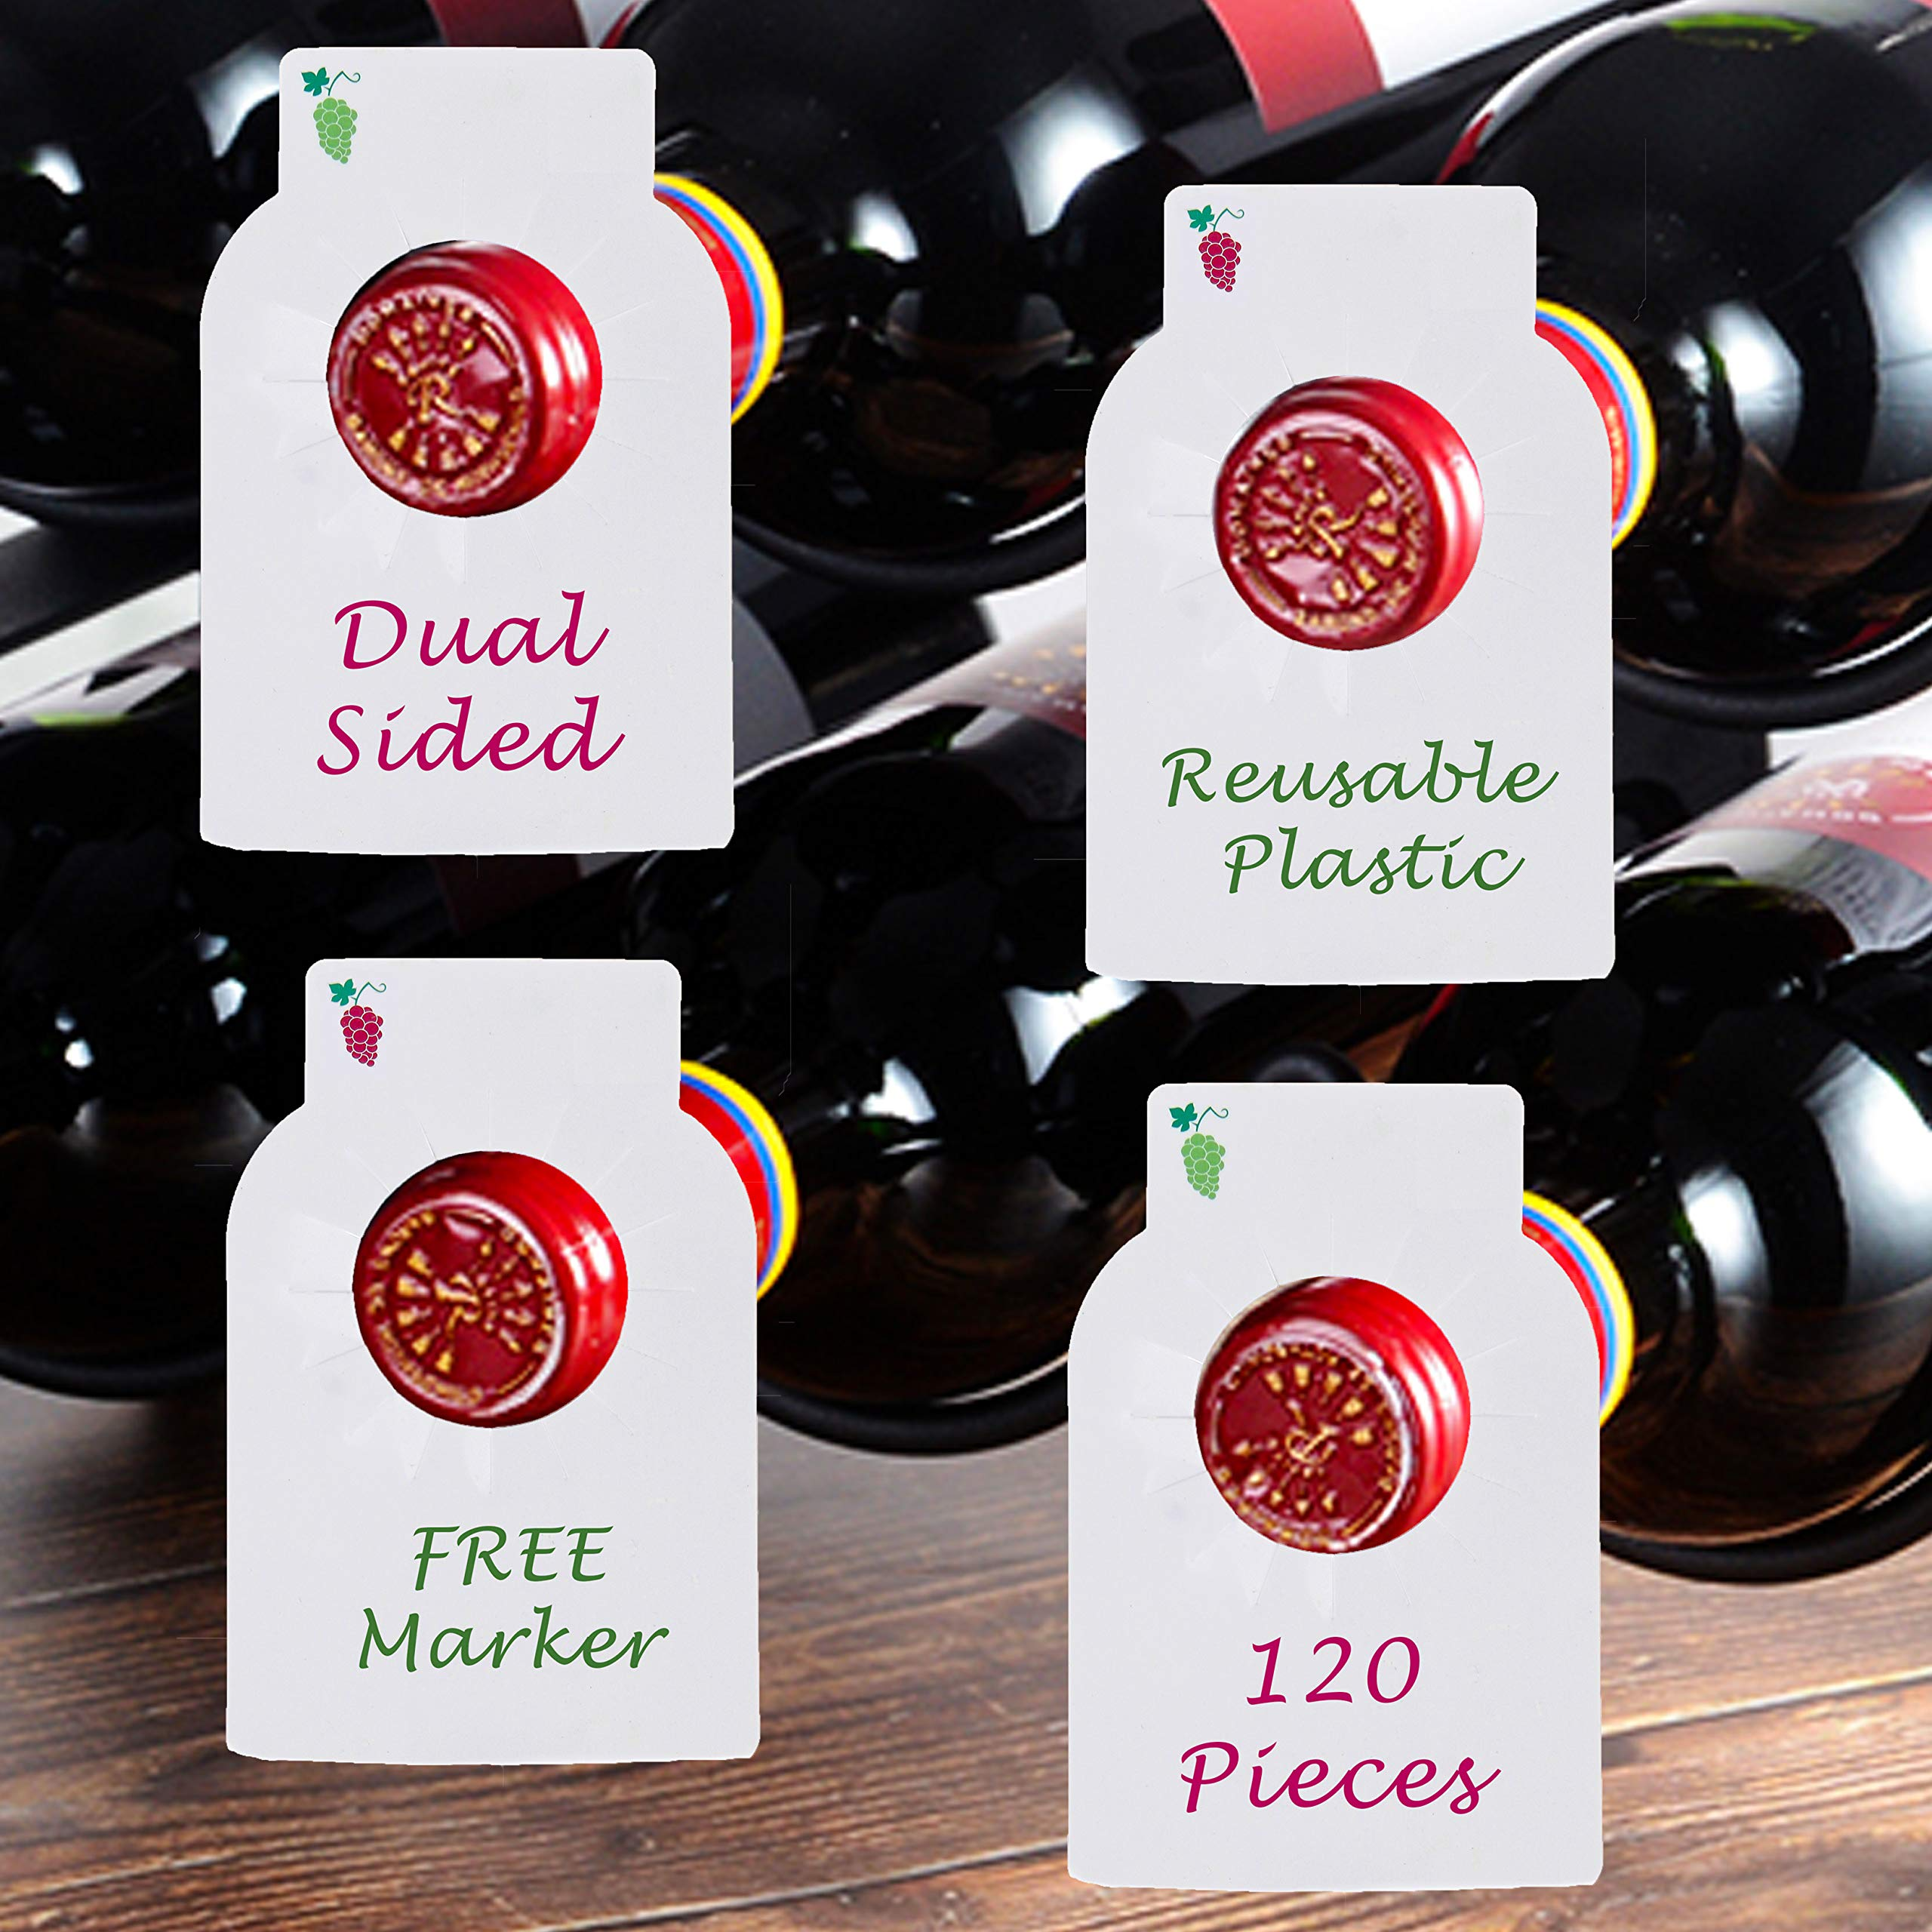 Reusable Wine Bottles Tag Racks Bottle Labels Hang Tags Cellar Storage Glass Markers Plastic Custom Label Fit Enthusiast Erasable Wipes Dry Erase Marker Colored Rack Bulk Blank Liquor Hangers 120 PCS by Dapper Display